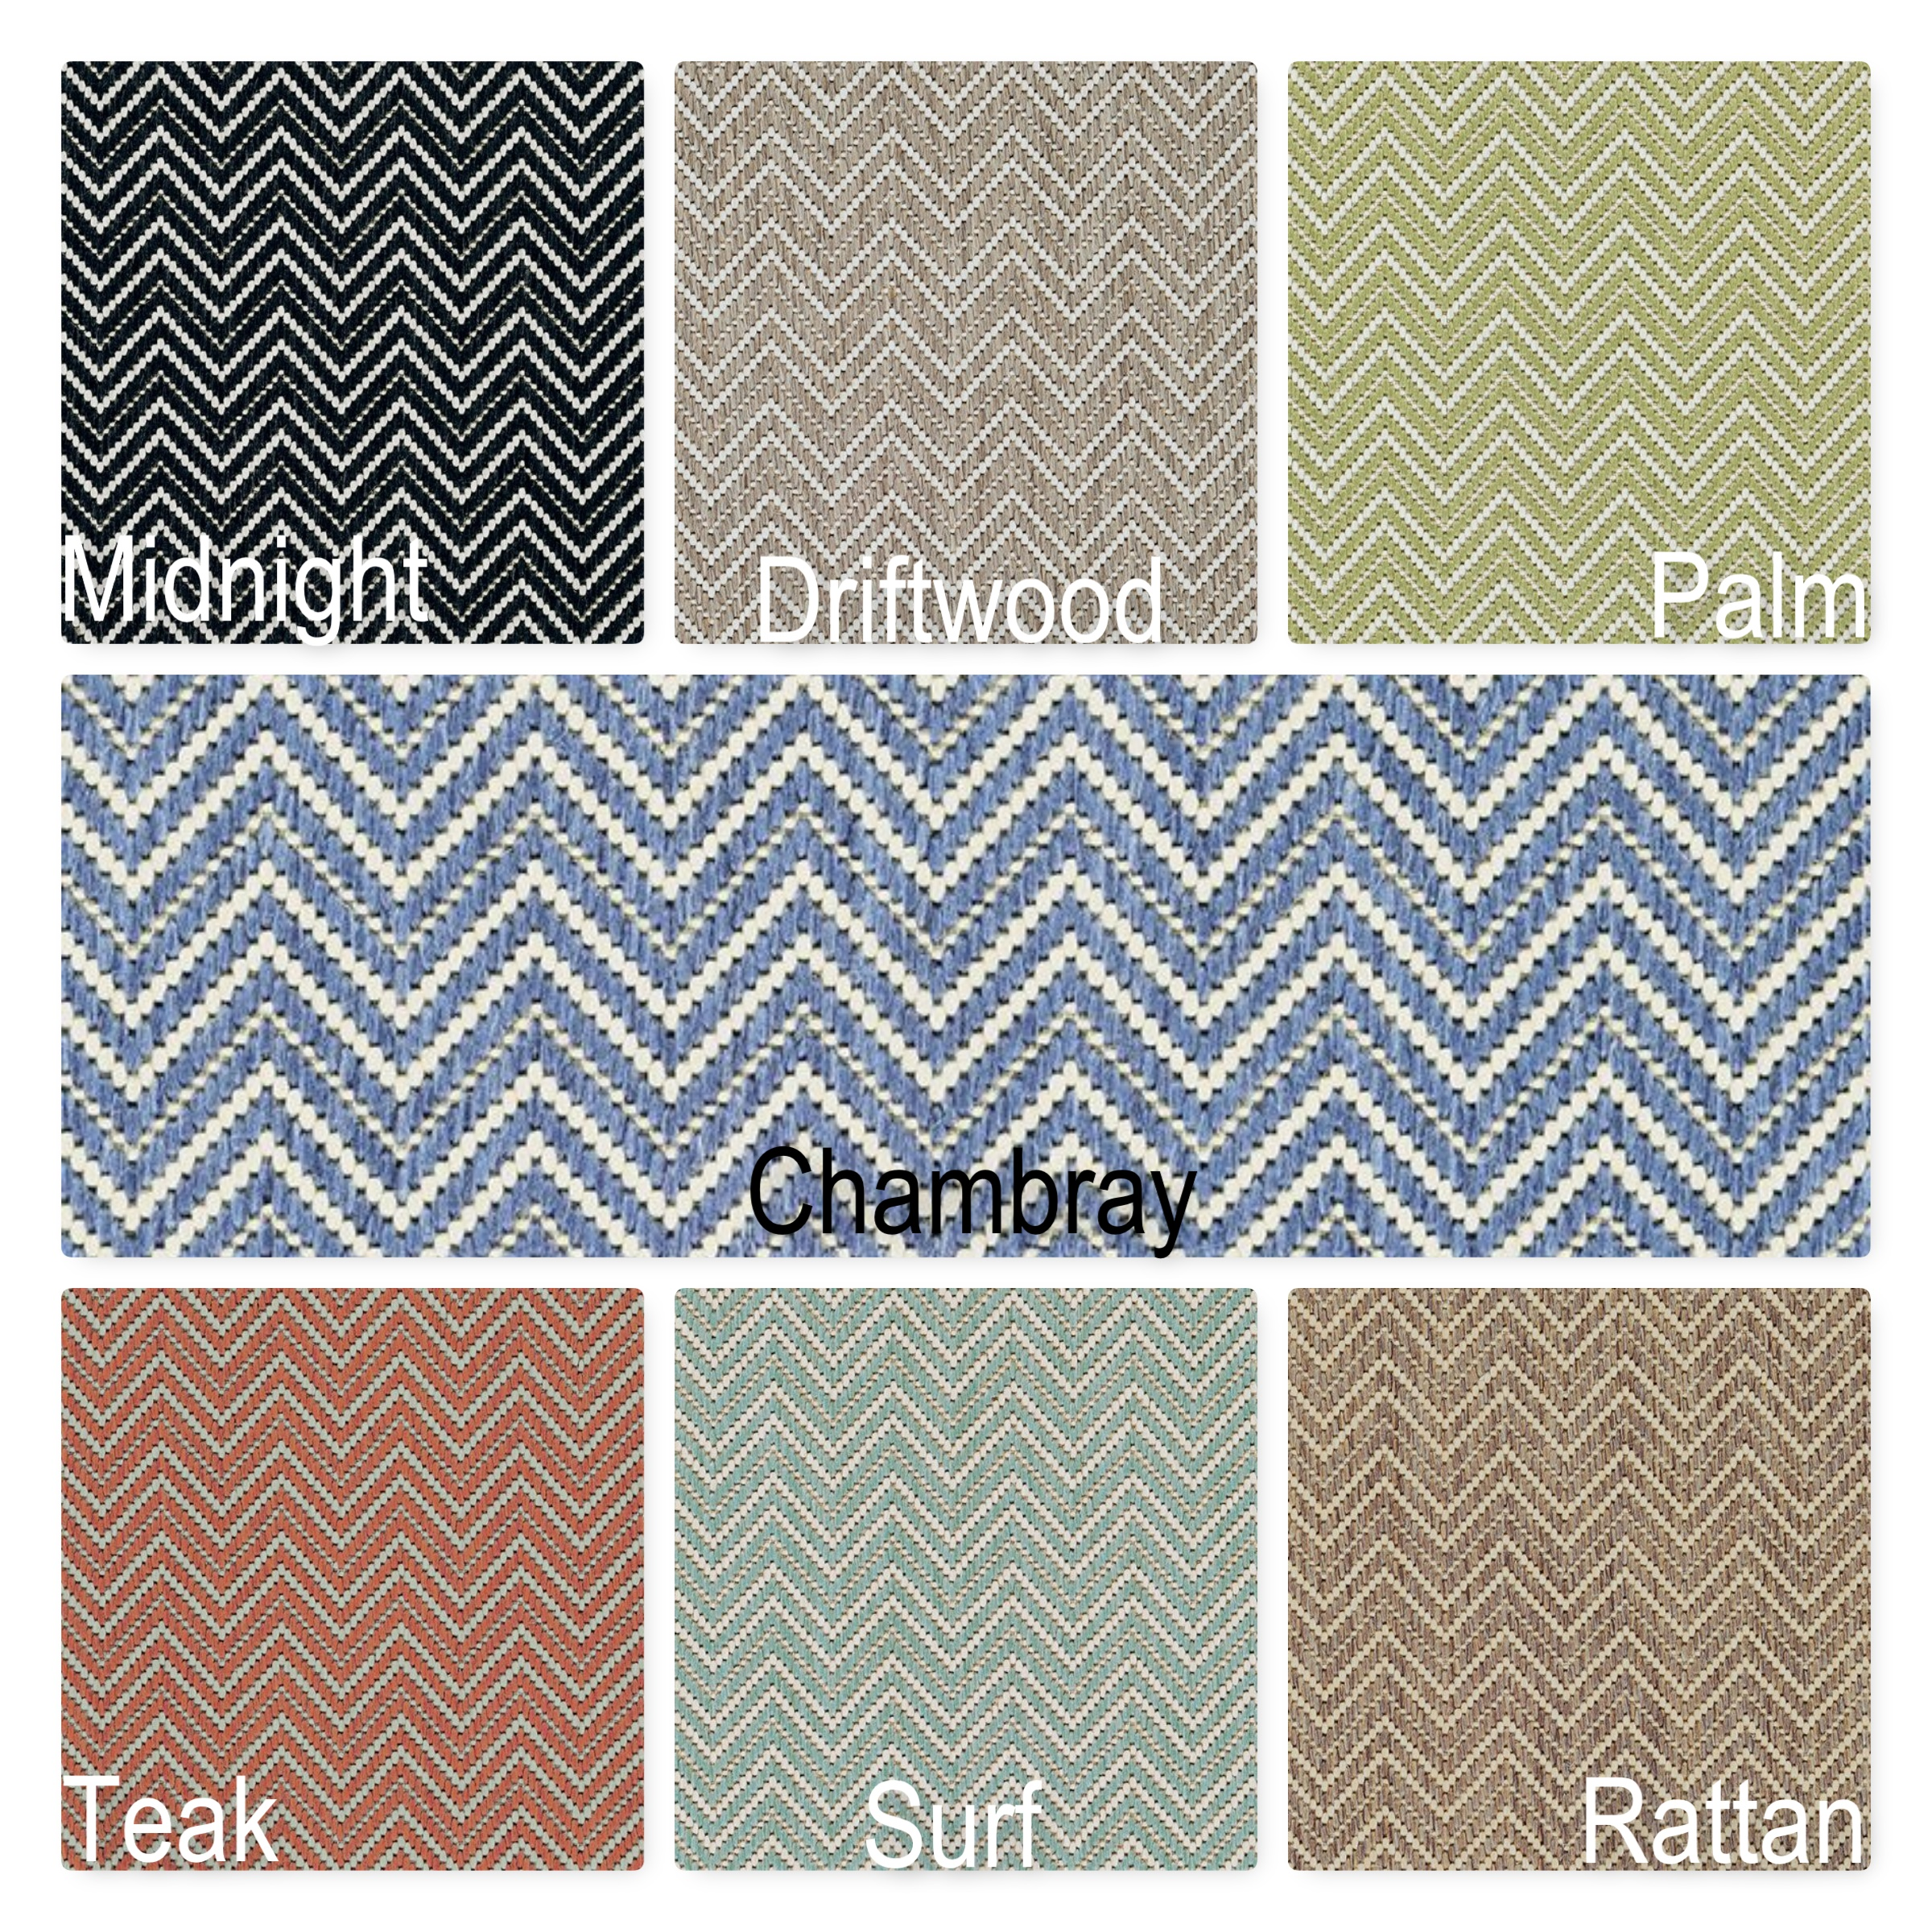 beachcrest jasmine indoor estates home rugs pdx sandturquoise reviews rug wayfair area indooroutdoor sand turquoise outdoor